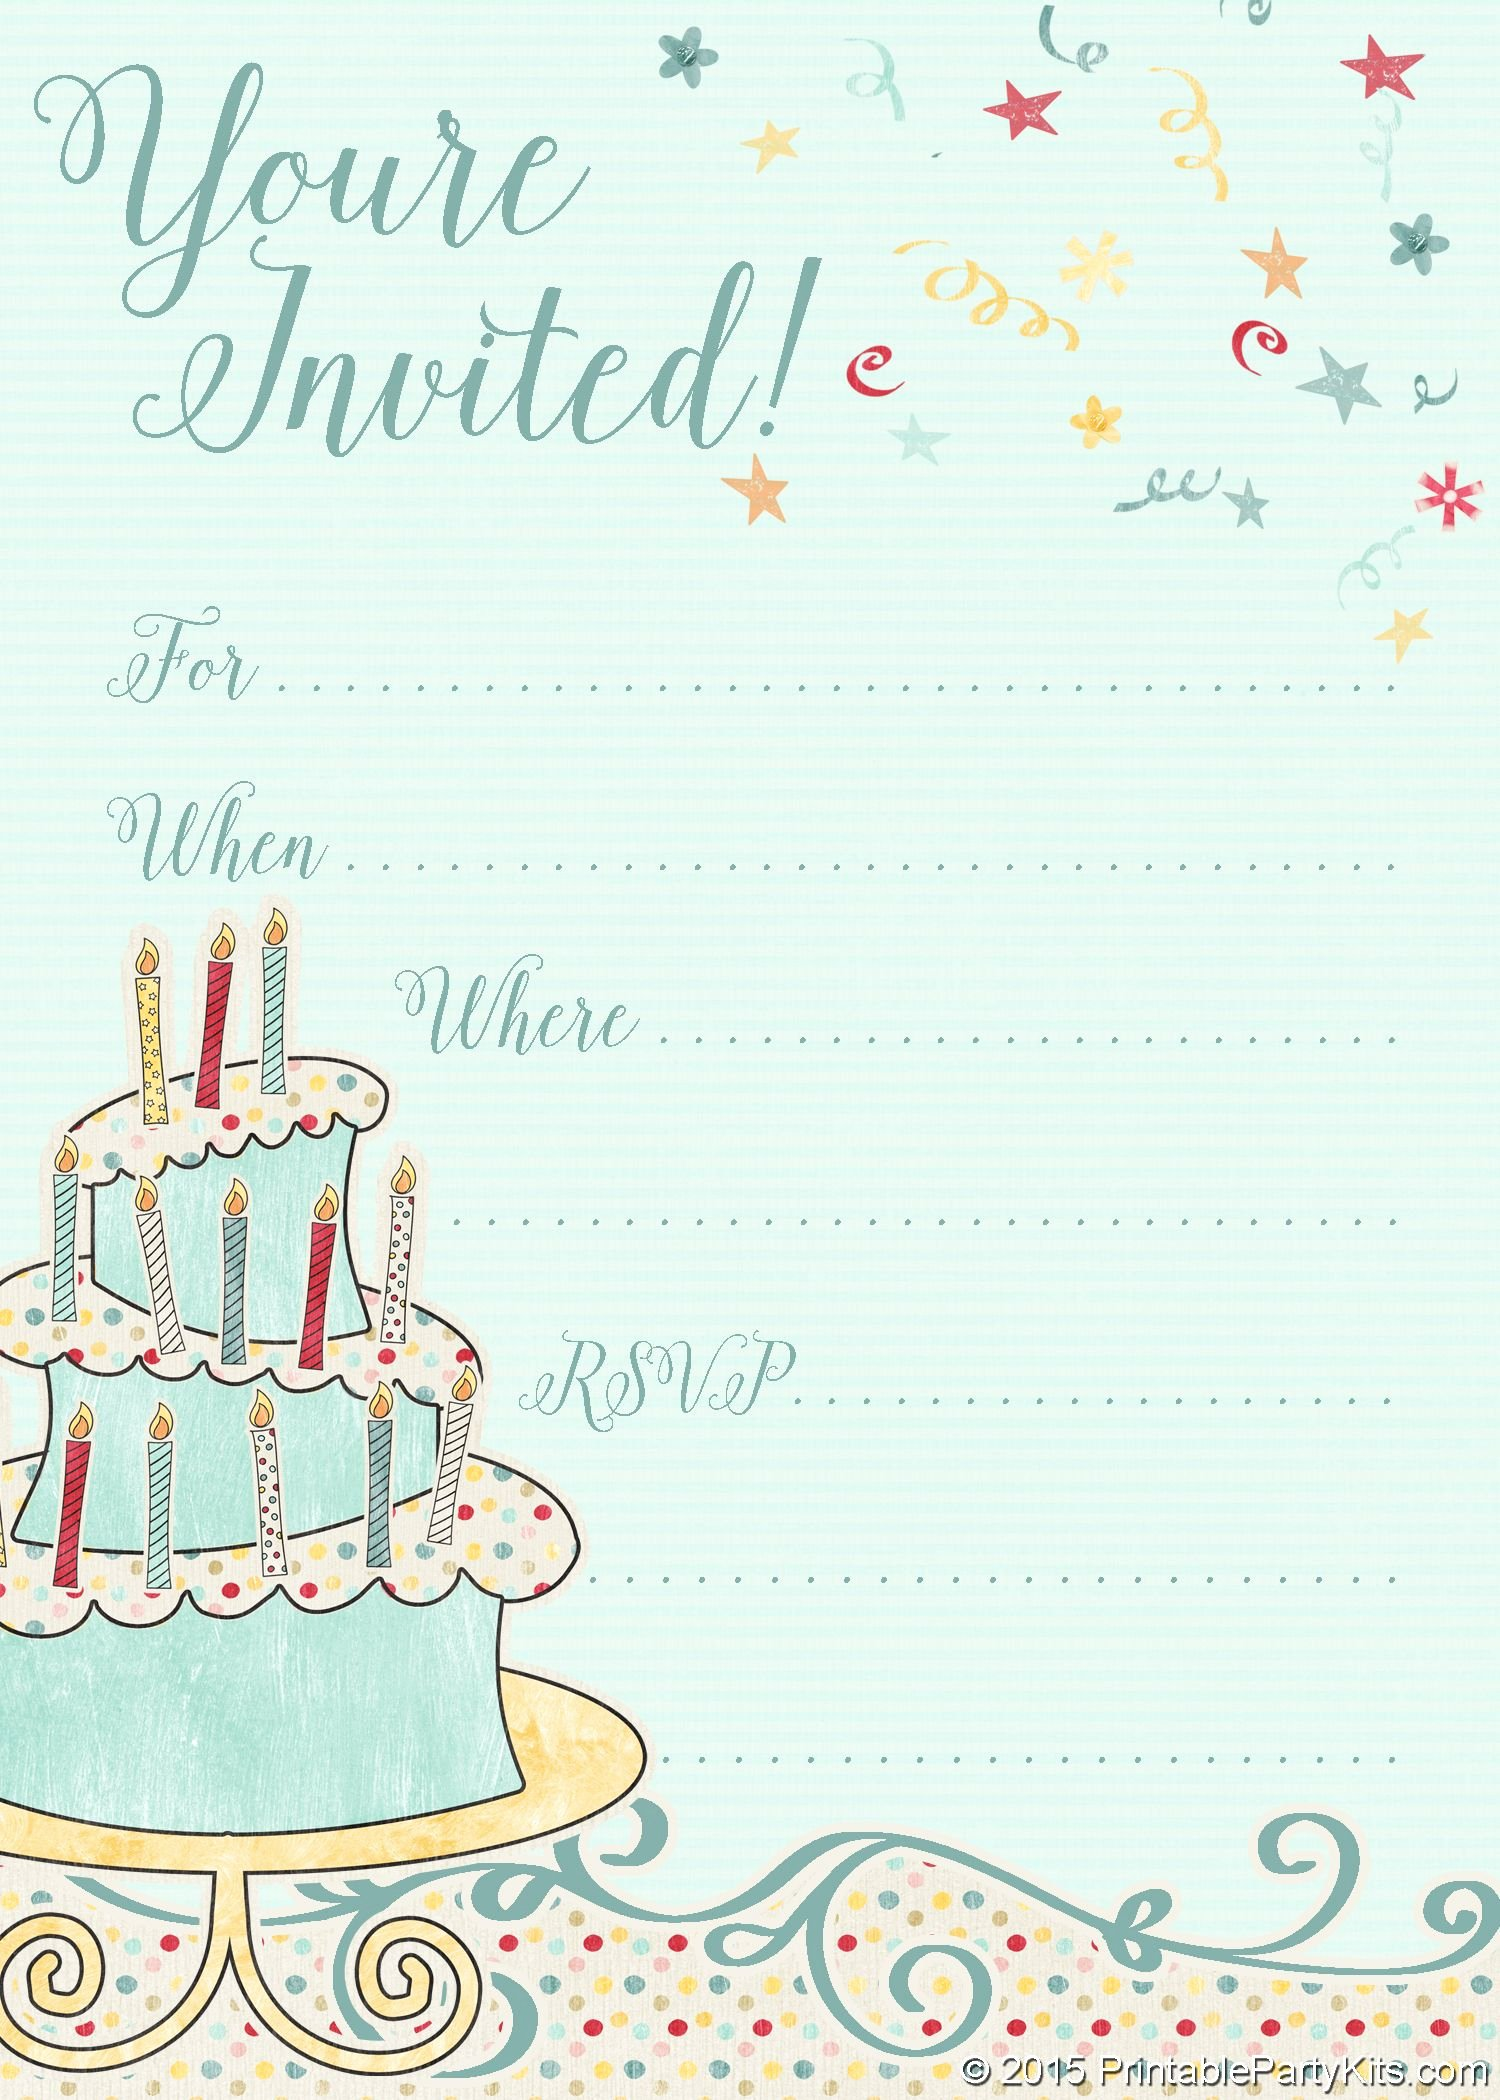 Free Printable Invitations Templates Best Of Free Printable Whimsical Birthday Party Invitation